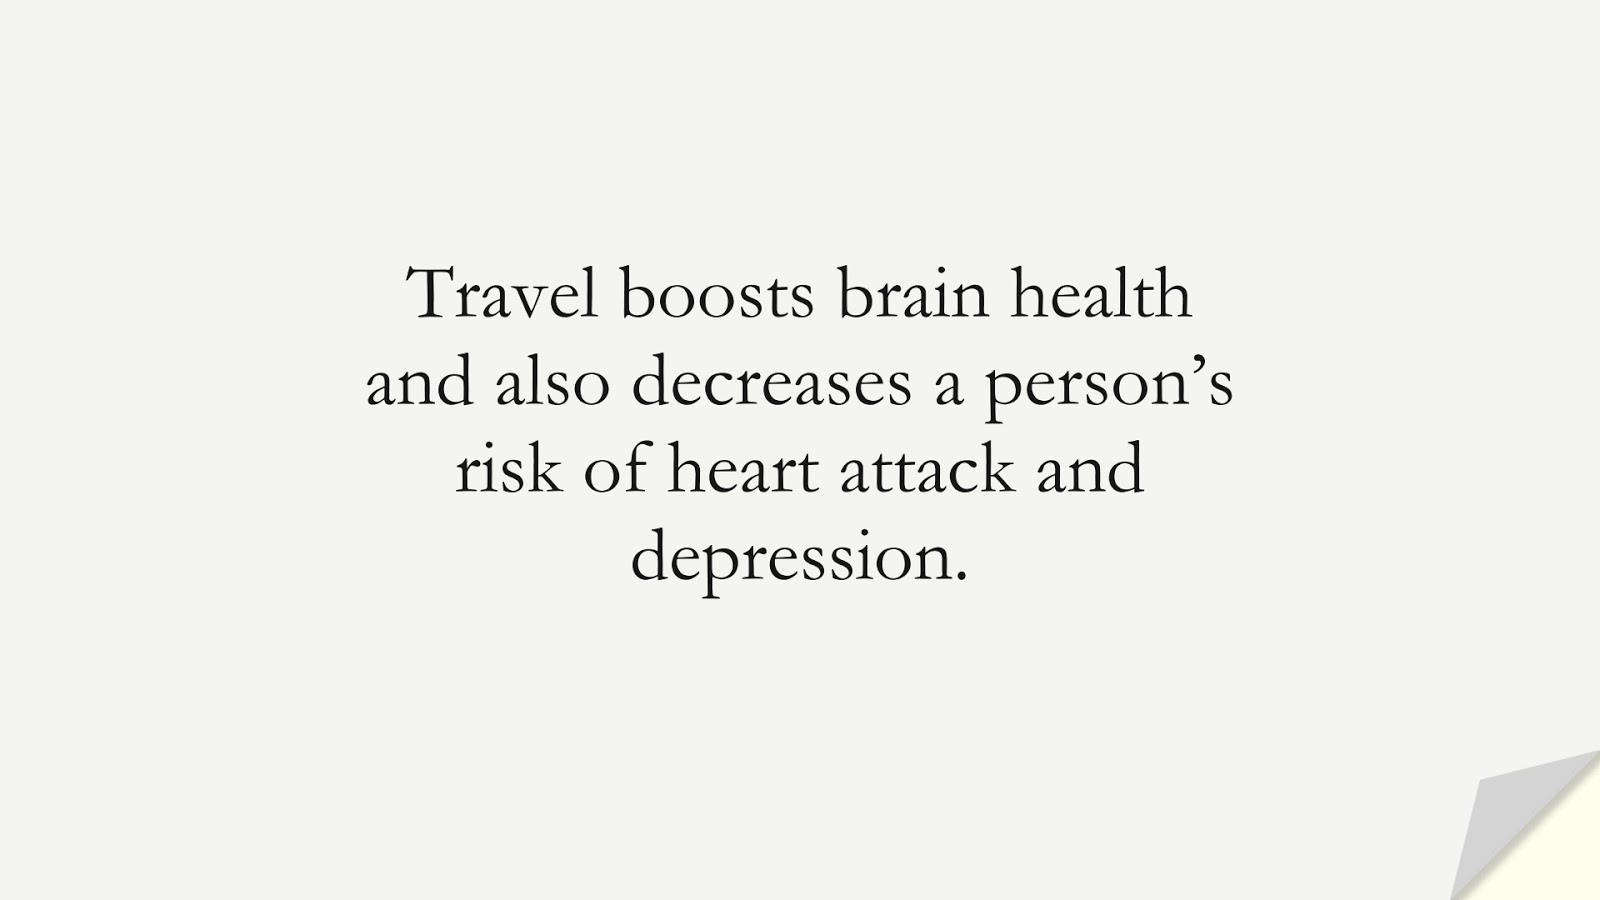 Travel boosts brain health and also decreases a person's risk of heart attack and depression.FALSE